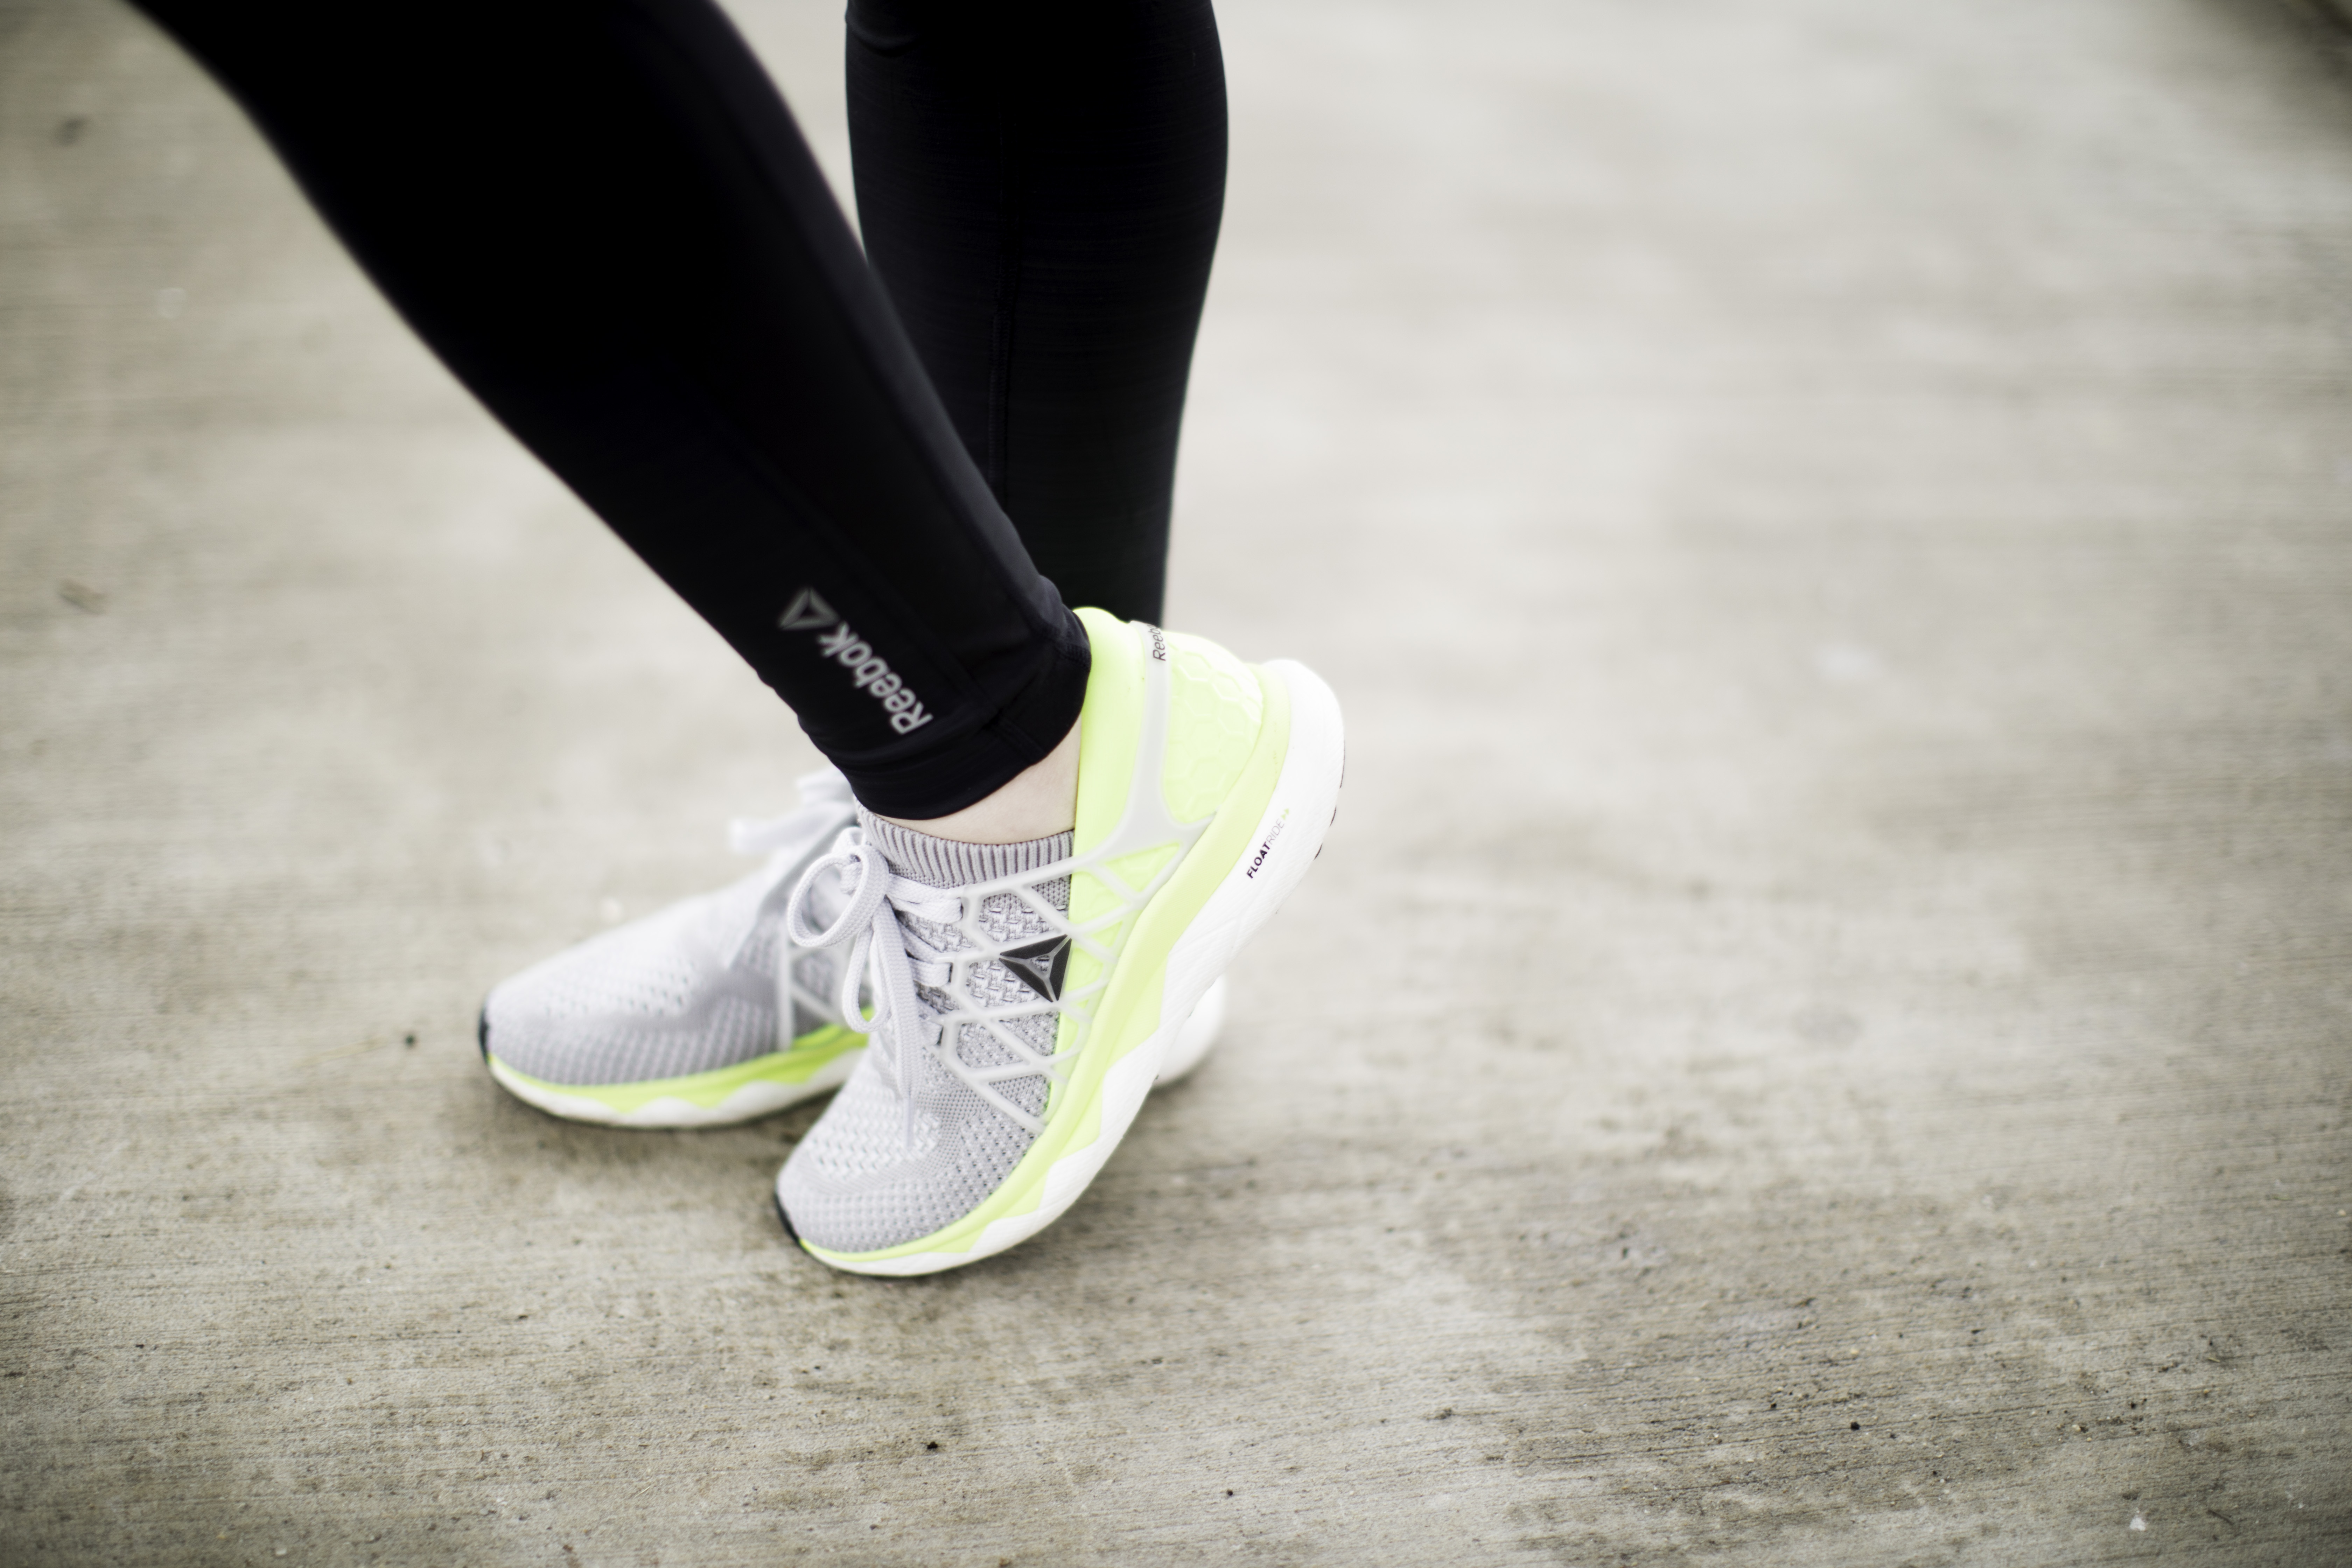 float through your run with Reebok Floatride, the ultimate running shoe, best running shoe, comfortable running shoe, reebok running shoe